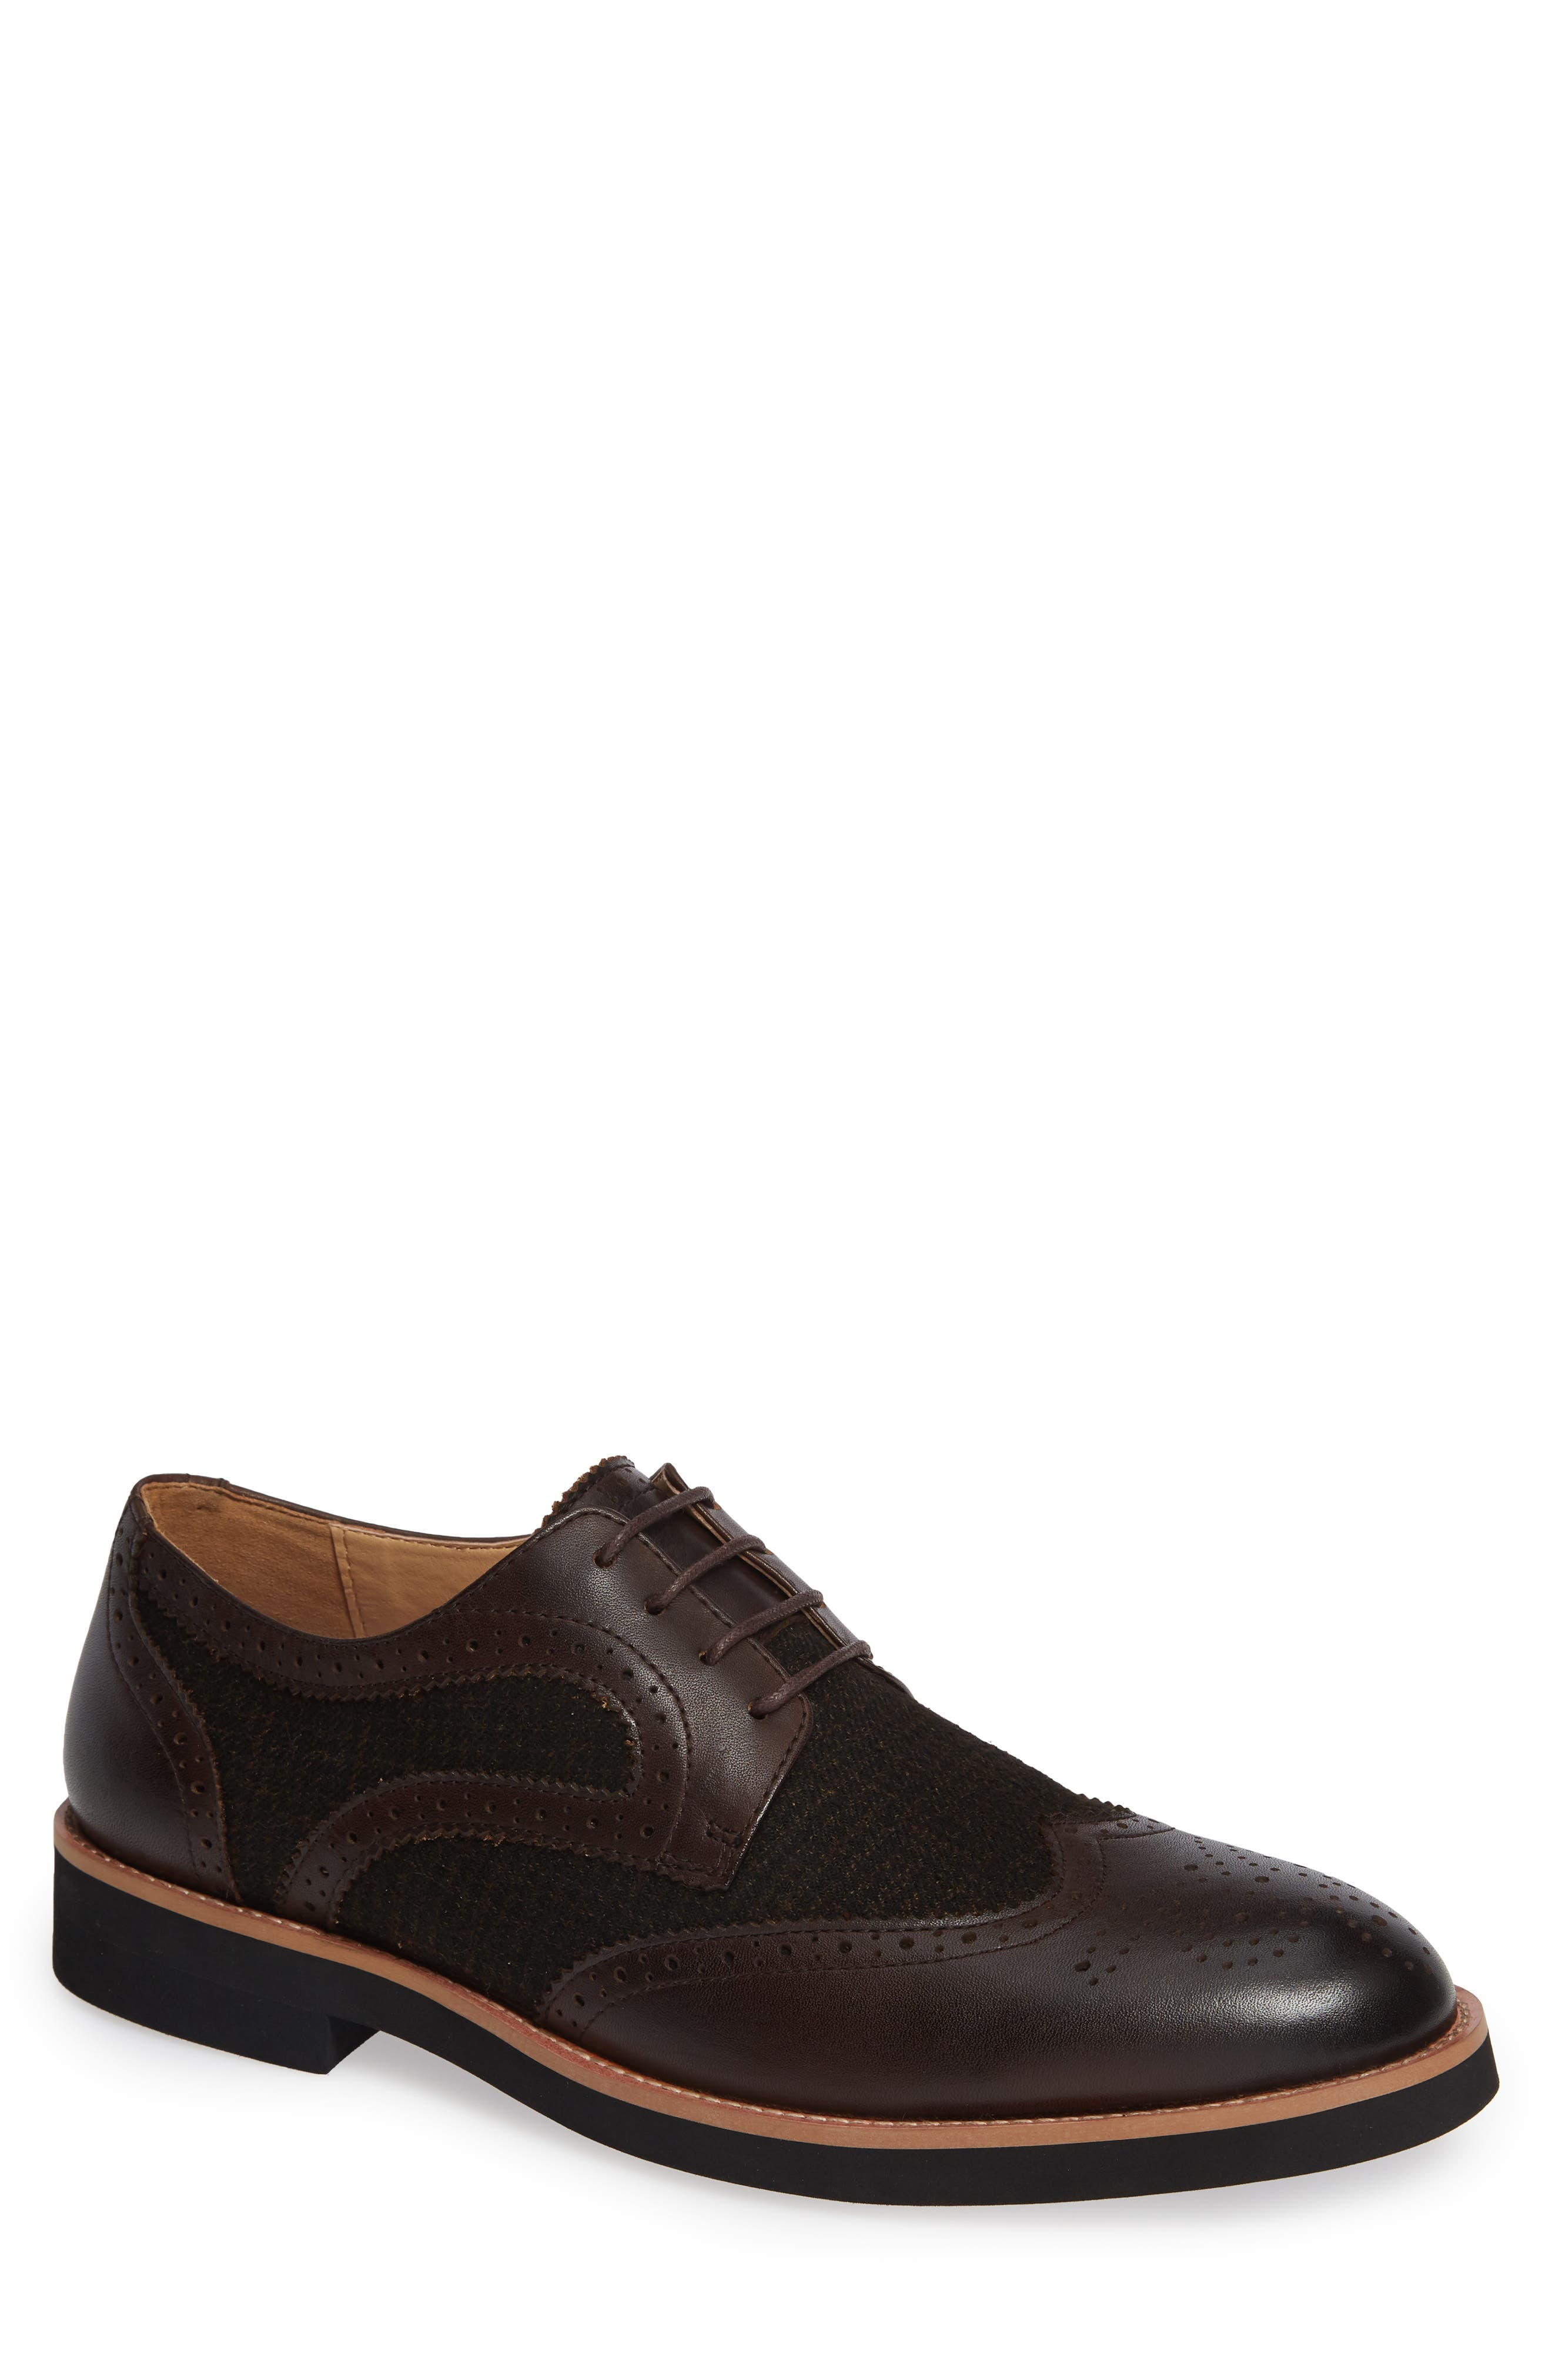 Bolton Wingtip,                         Main,                         color, BROWN